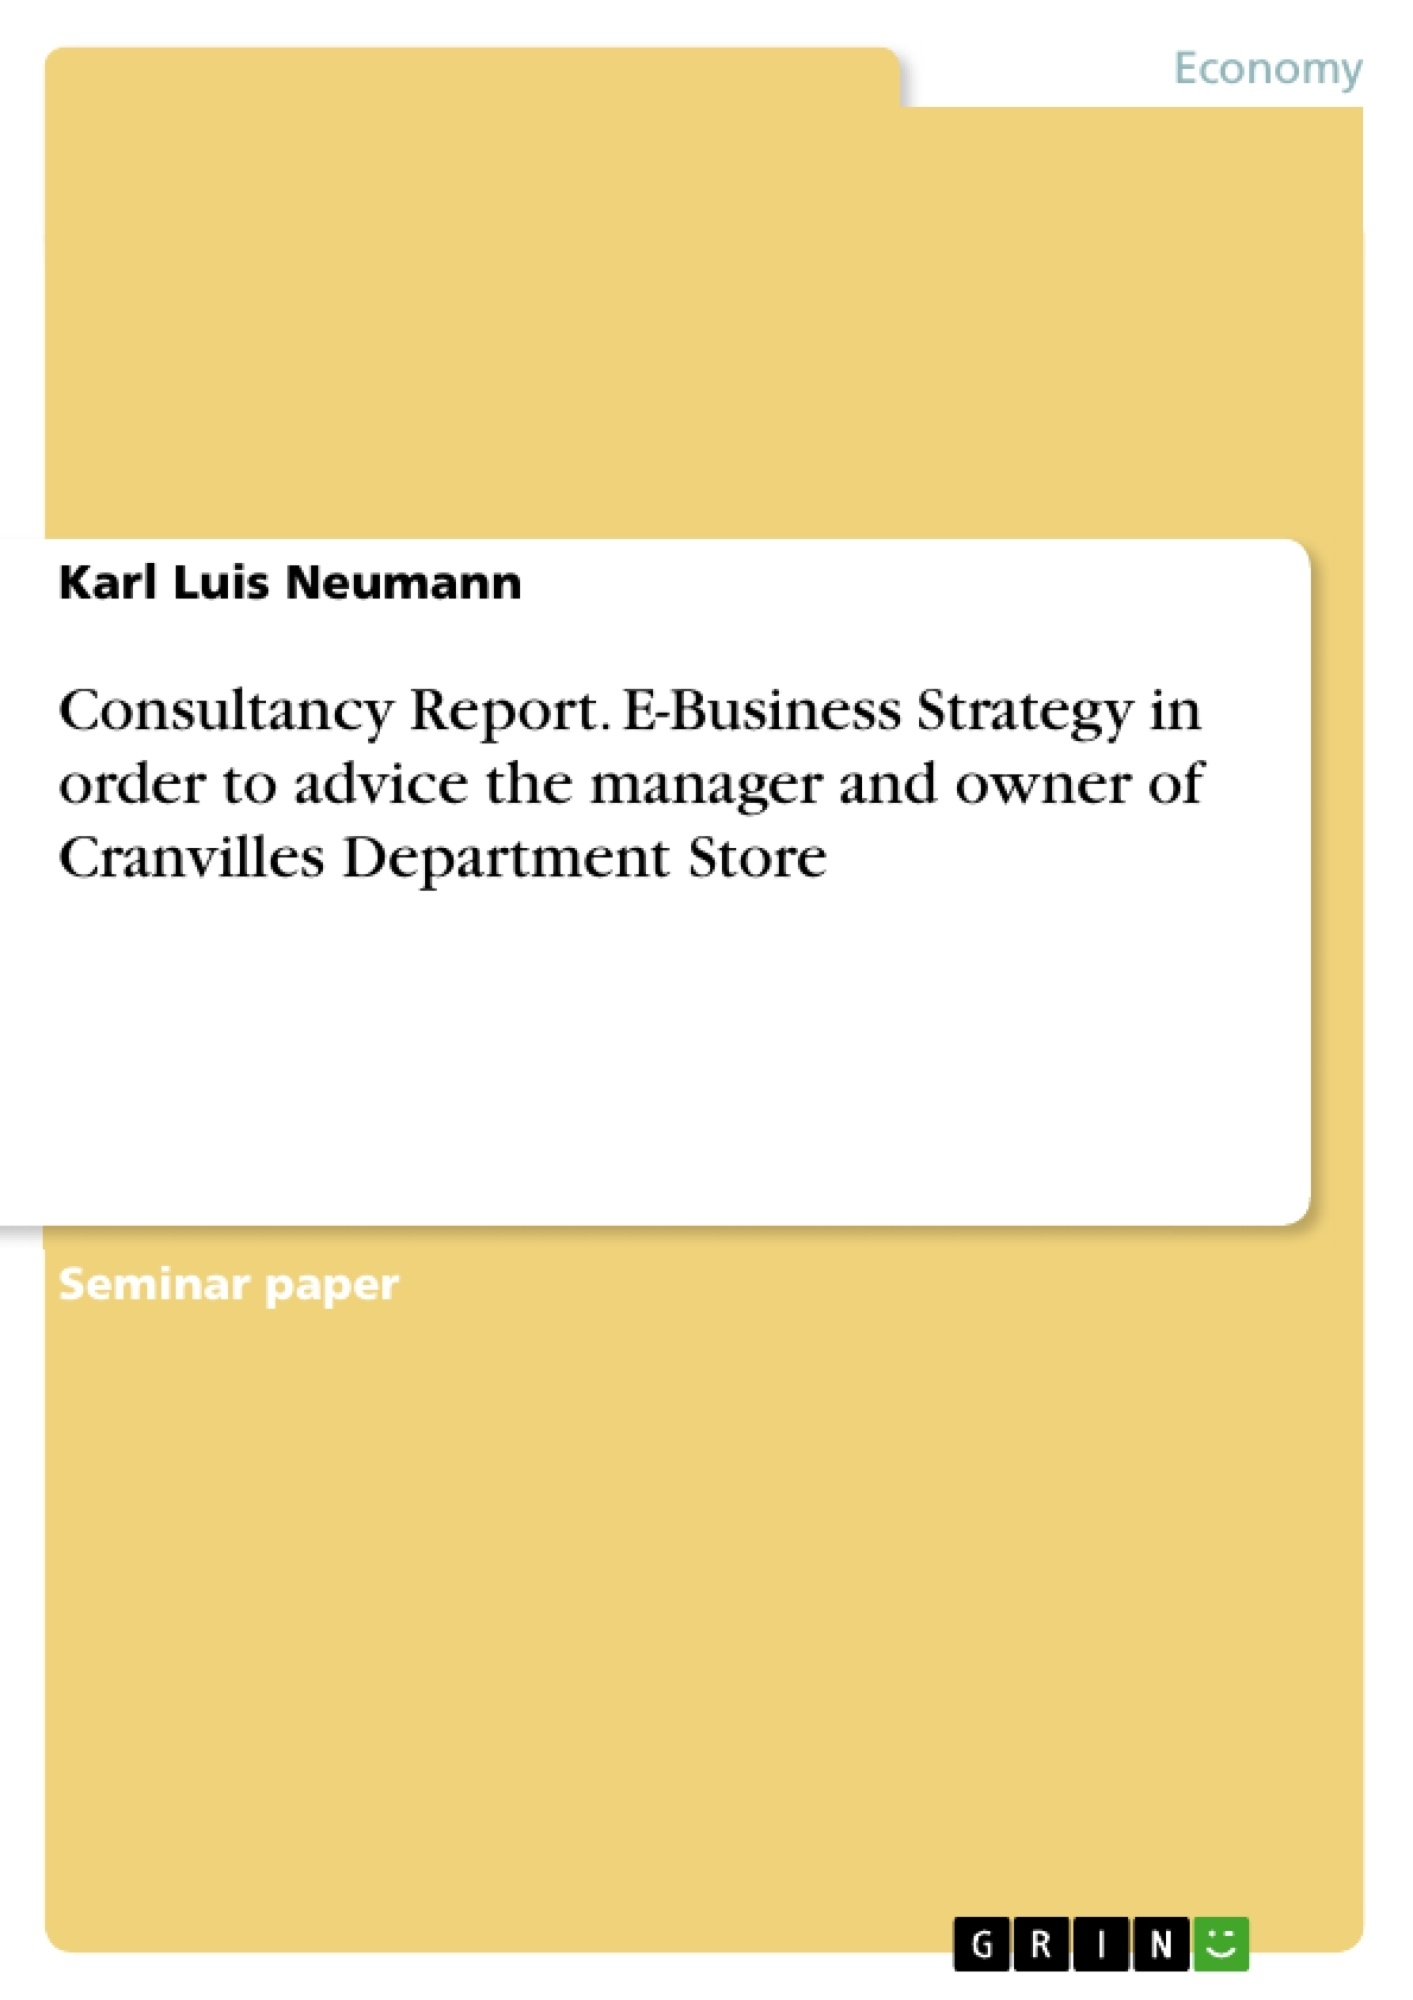 Title: Consultancy Report. E-Business Strategy in order to advice the manager and owner of Cranvilles Department Store